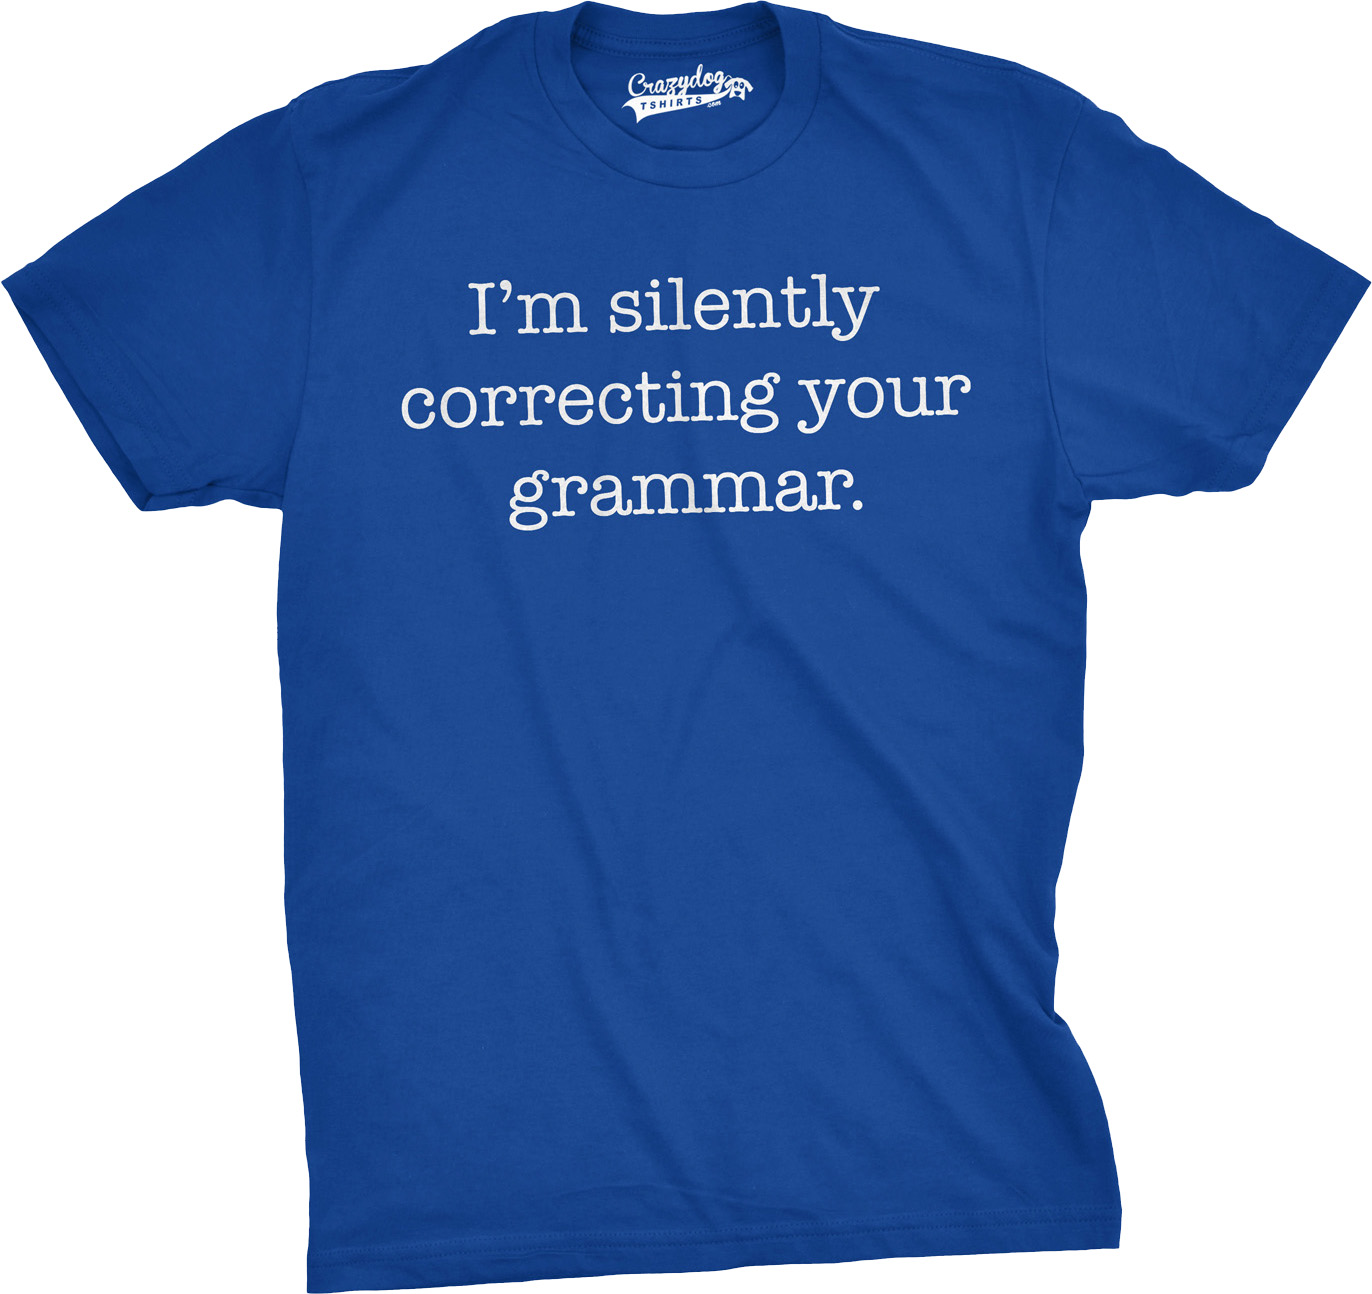 Crazy Dog TShirts - Mens I'm Silently Correcting Your Grammar Shirt Funny English T-shirt